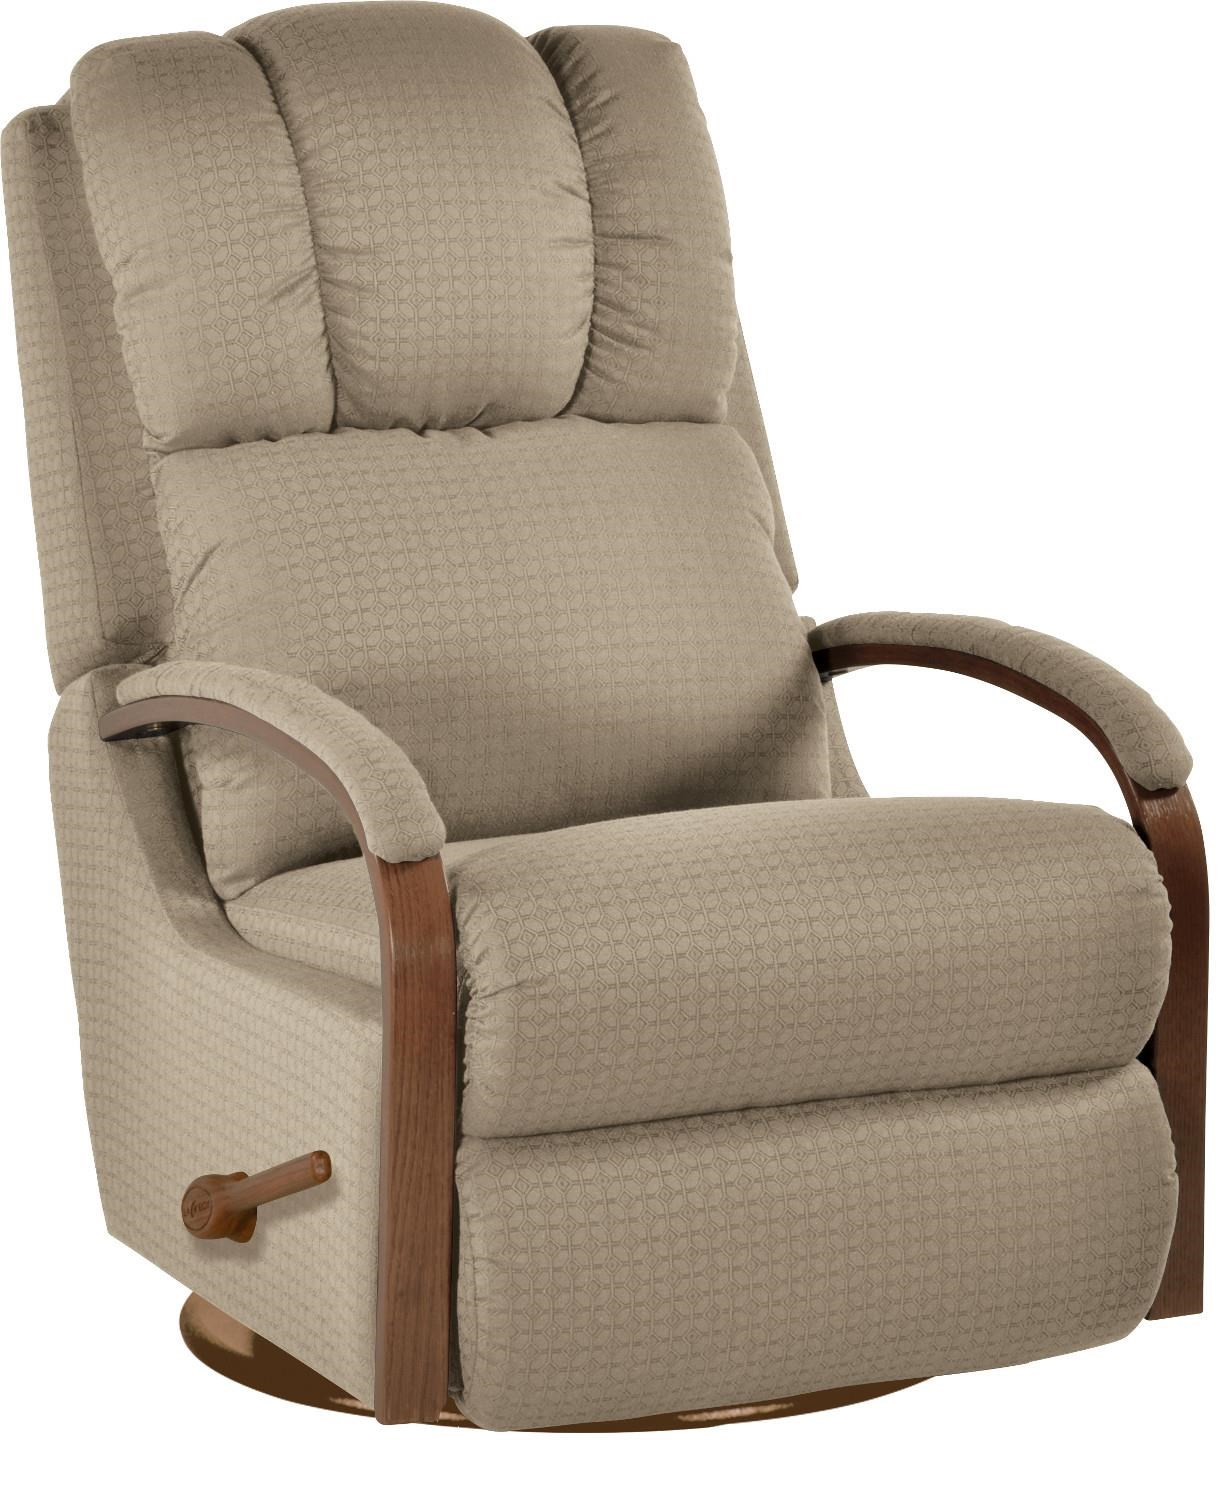 Lazy Boy Swivel Chair Recliners Harbor Town Reclina Glider Swivel Recliner By La Z Boy At Conlin S Furniture